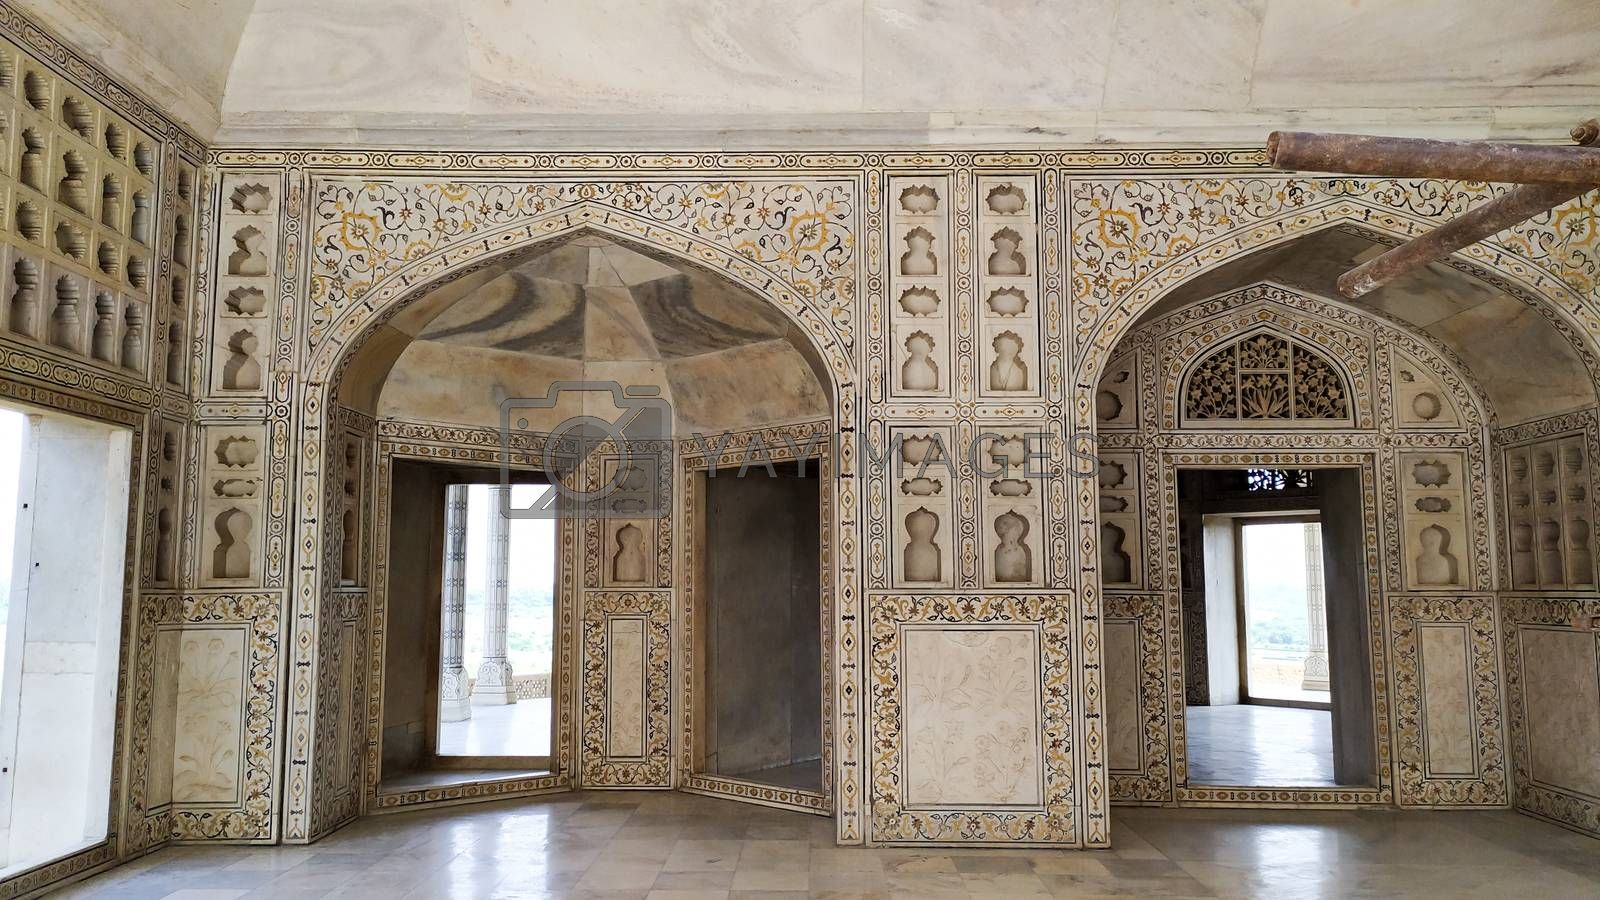 Inside view Taj Mahal Tomb mausoleum, a white marble of Mughal emperor Shah Jahan in memory of his wife Mumtaj. Taj Mahal is jewel of Muslim art and a masterpieces of world heritage. Agra, India South Asia Pac May 2019